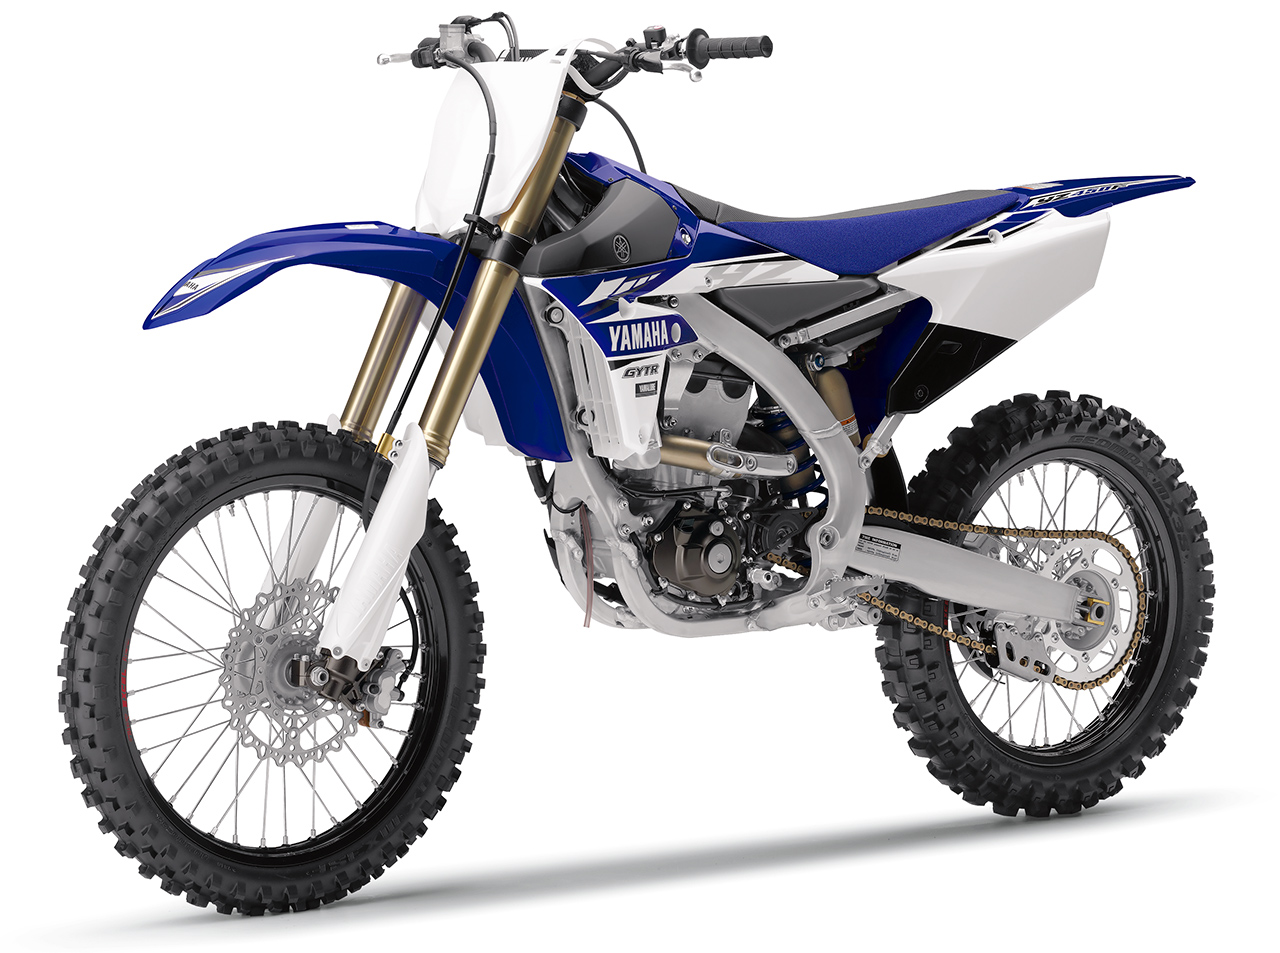 First look all of the 2017 yamaha 39 s from 85 to 450 for New yamaha 450